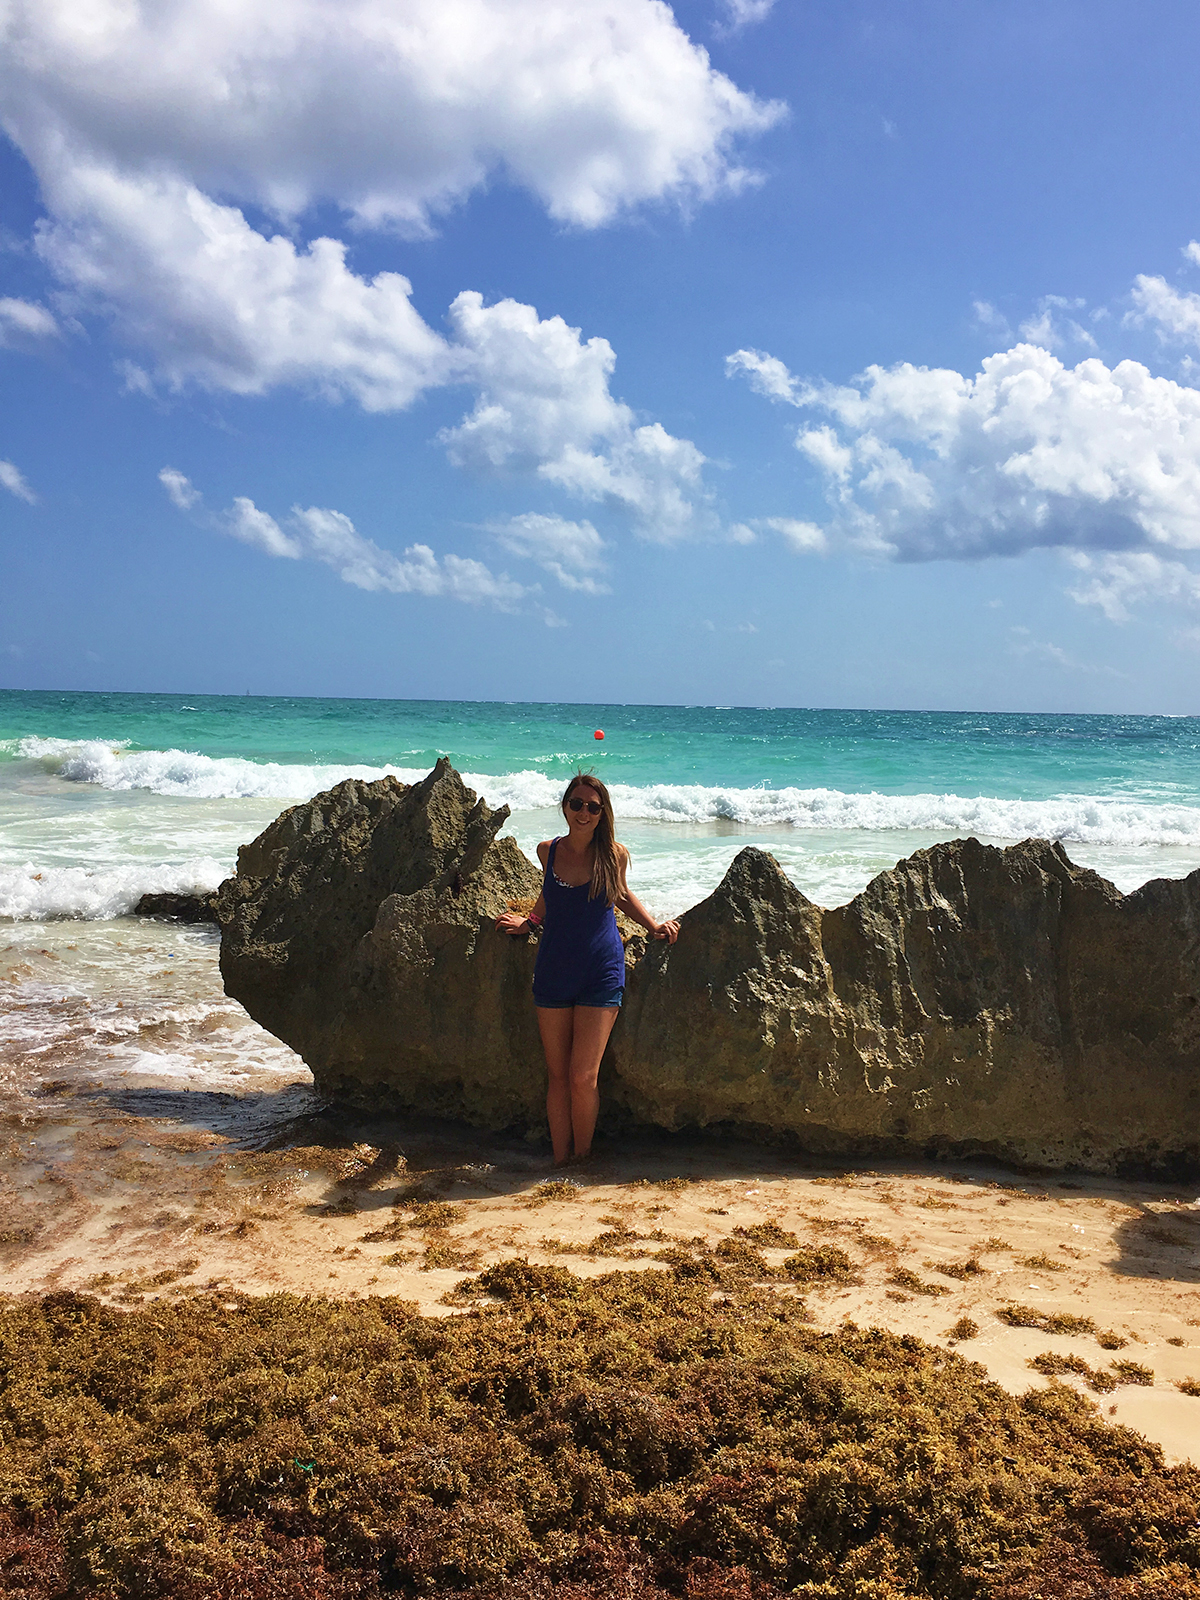 The Best Things To Do In Cancun Mexico